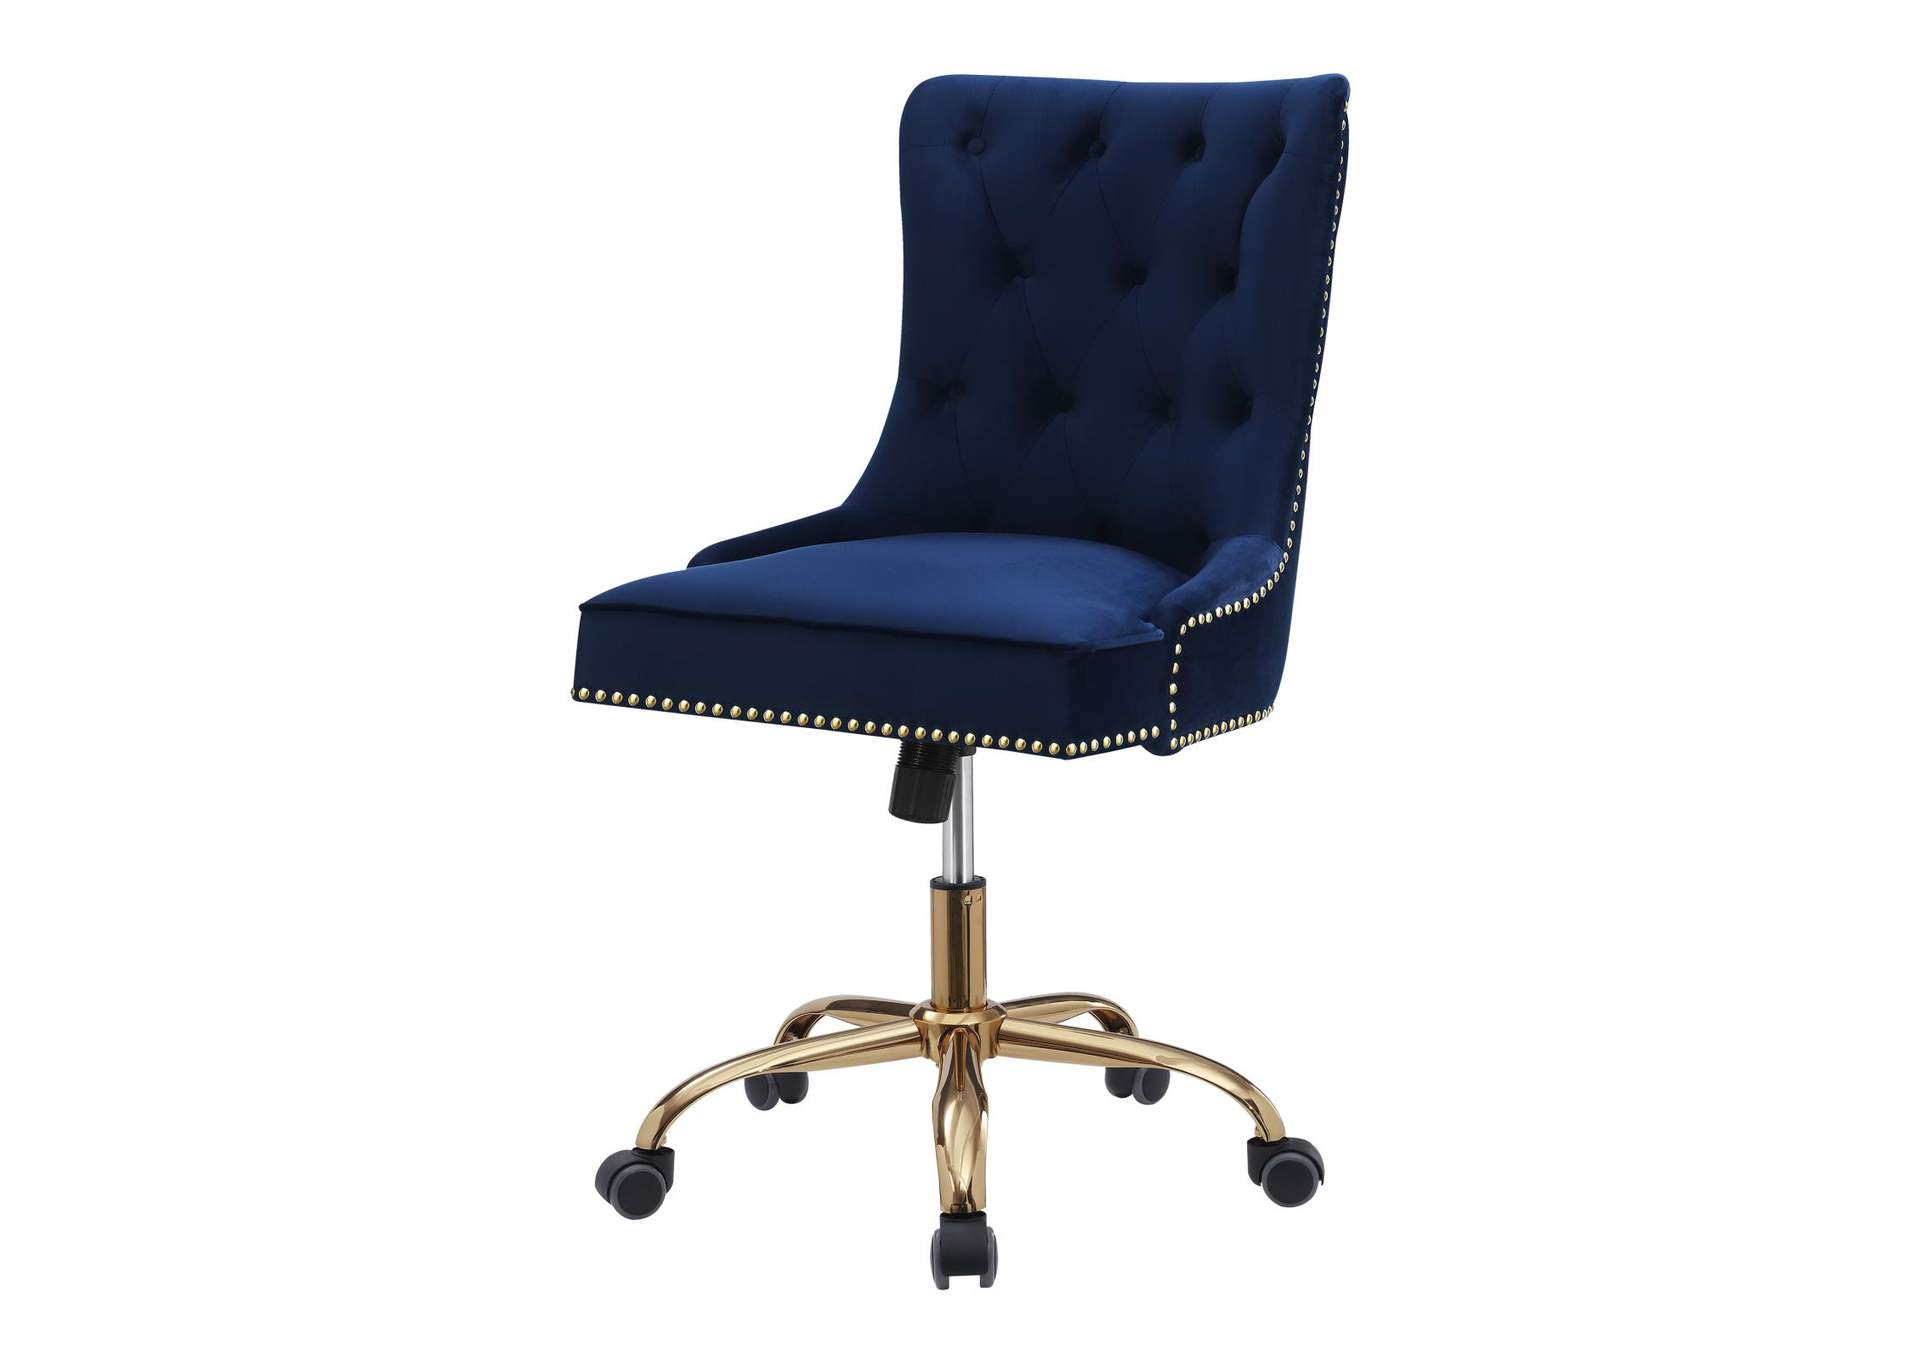 Mirage Modern Blue Velvet Office Chair,Coaster Furniture